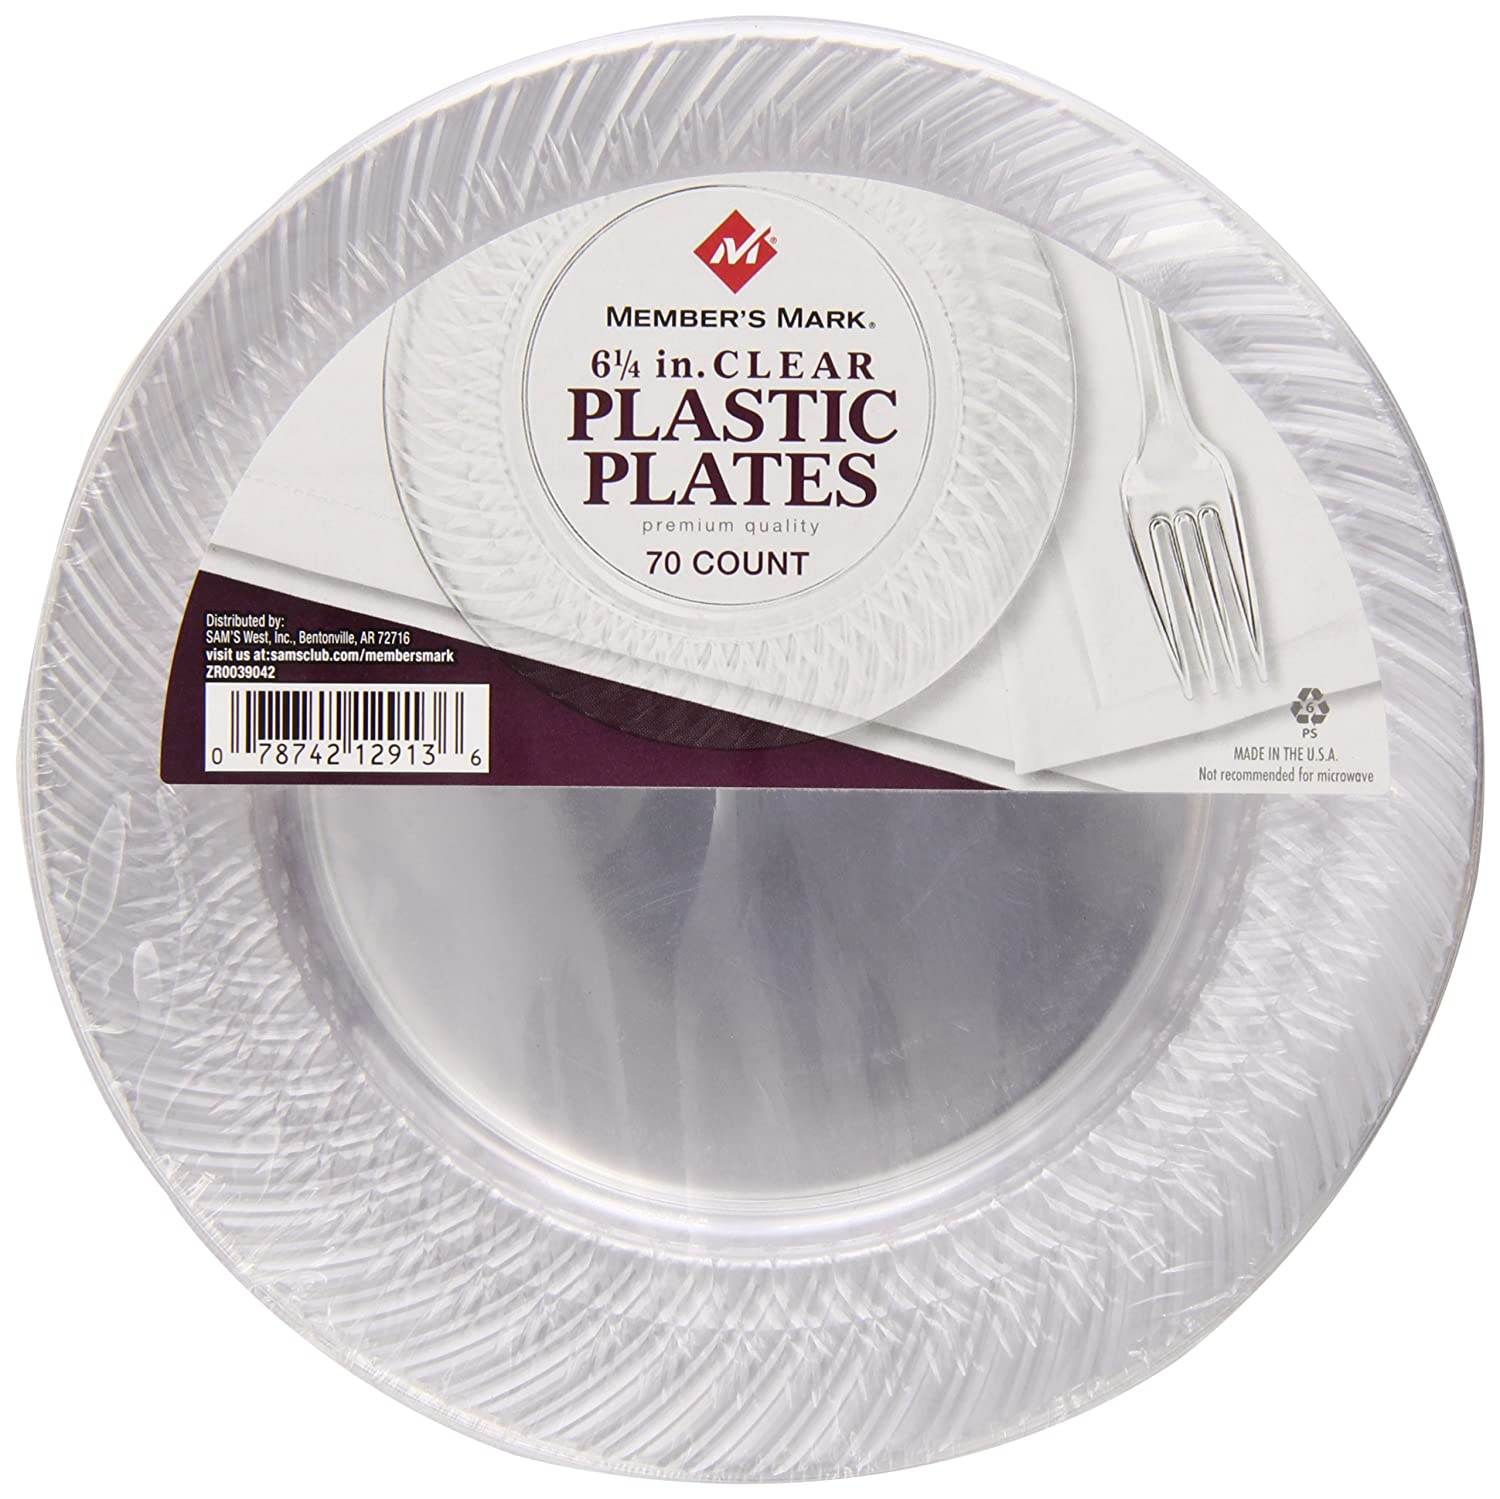 Amazon.com Memberu0027s mark Clear Plates 6 1/4  70 Count Health u0026 Personal Care  sc 1 st  Amazon.com & Amazon.com: Memberu0027s mark Clear Plates 6 1/4